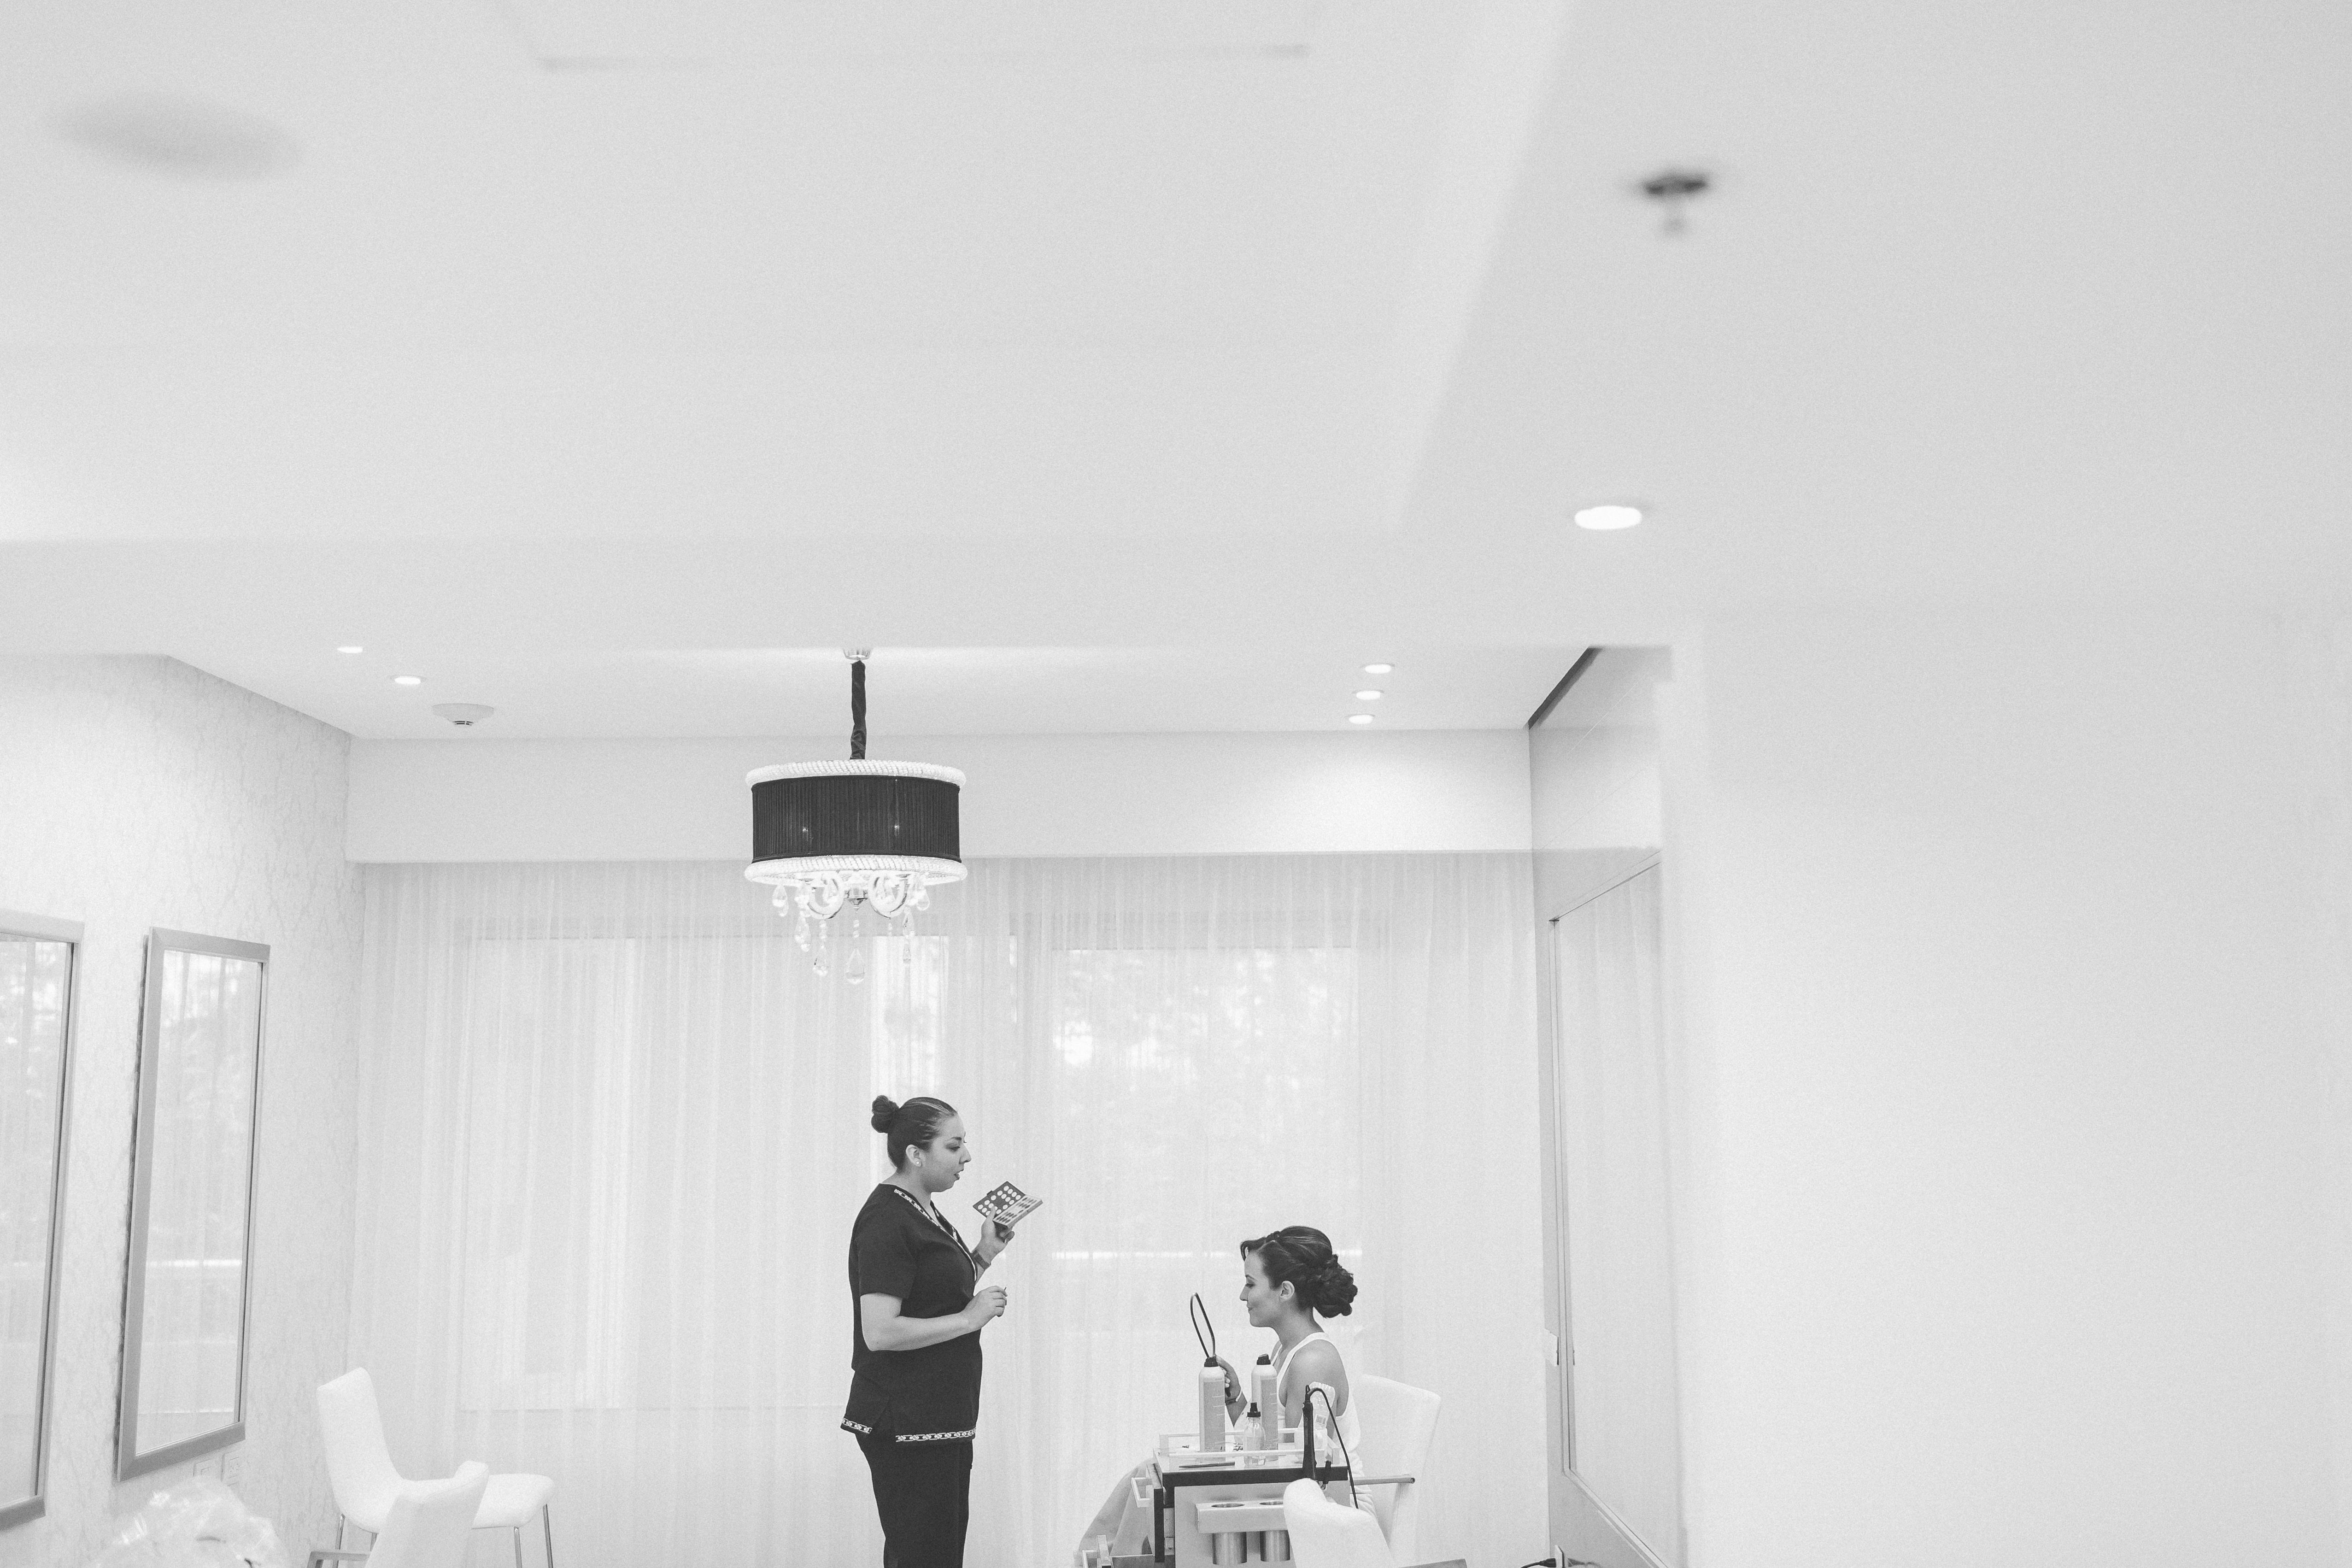 Paradisus Playa Del Carmen La Esmerelda Wedding in Mexico by photo-documentary destination wedding photographer Ben Lau.